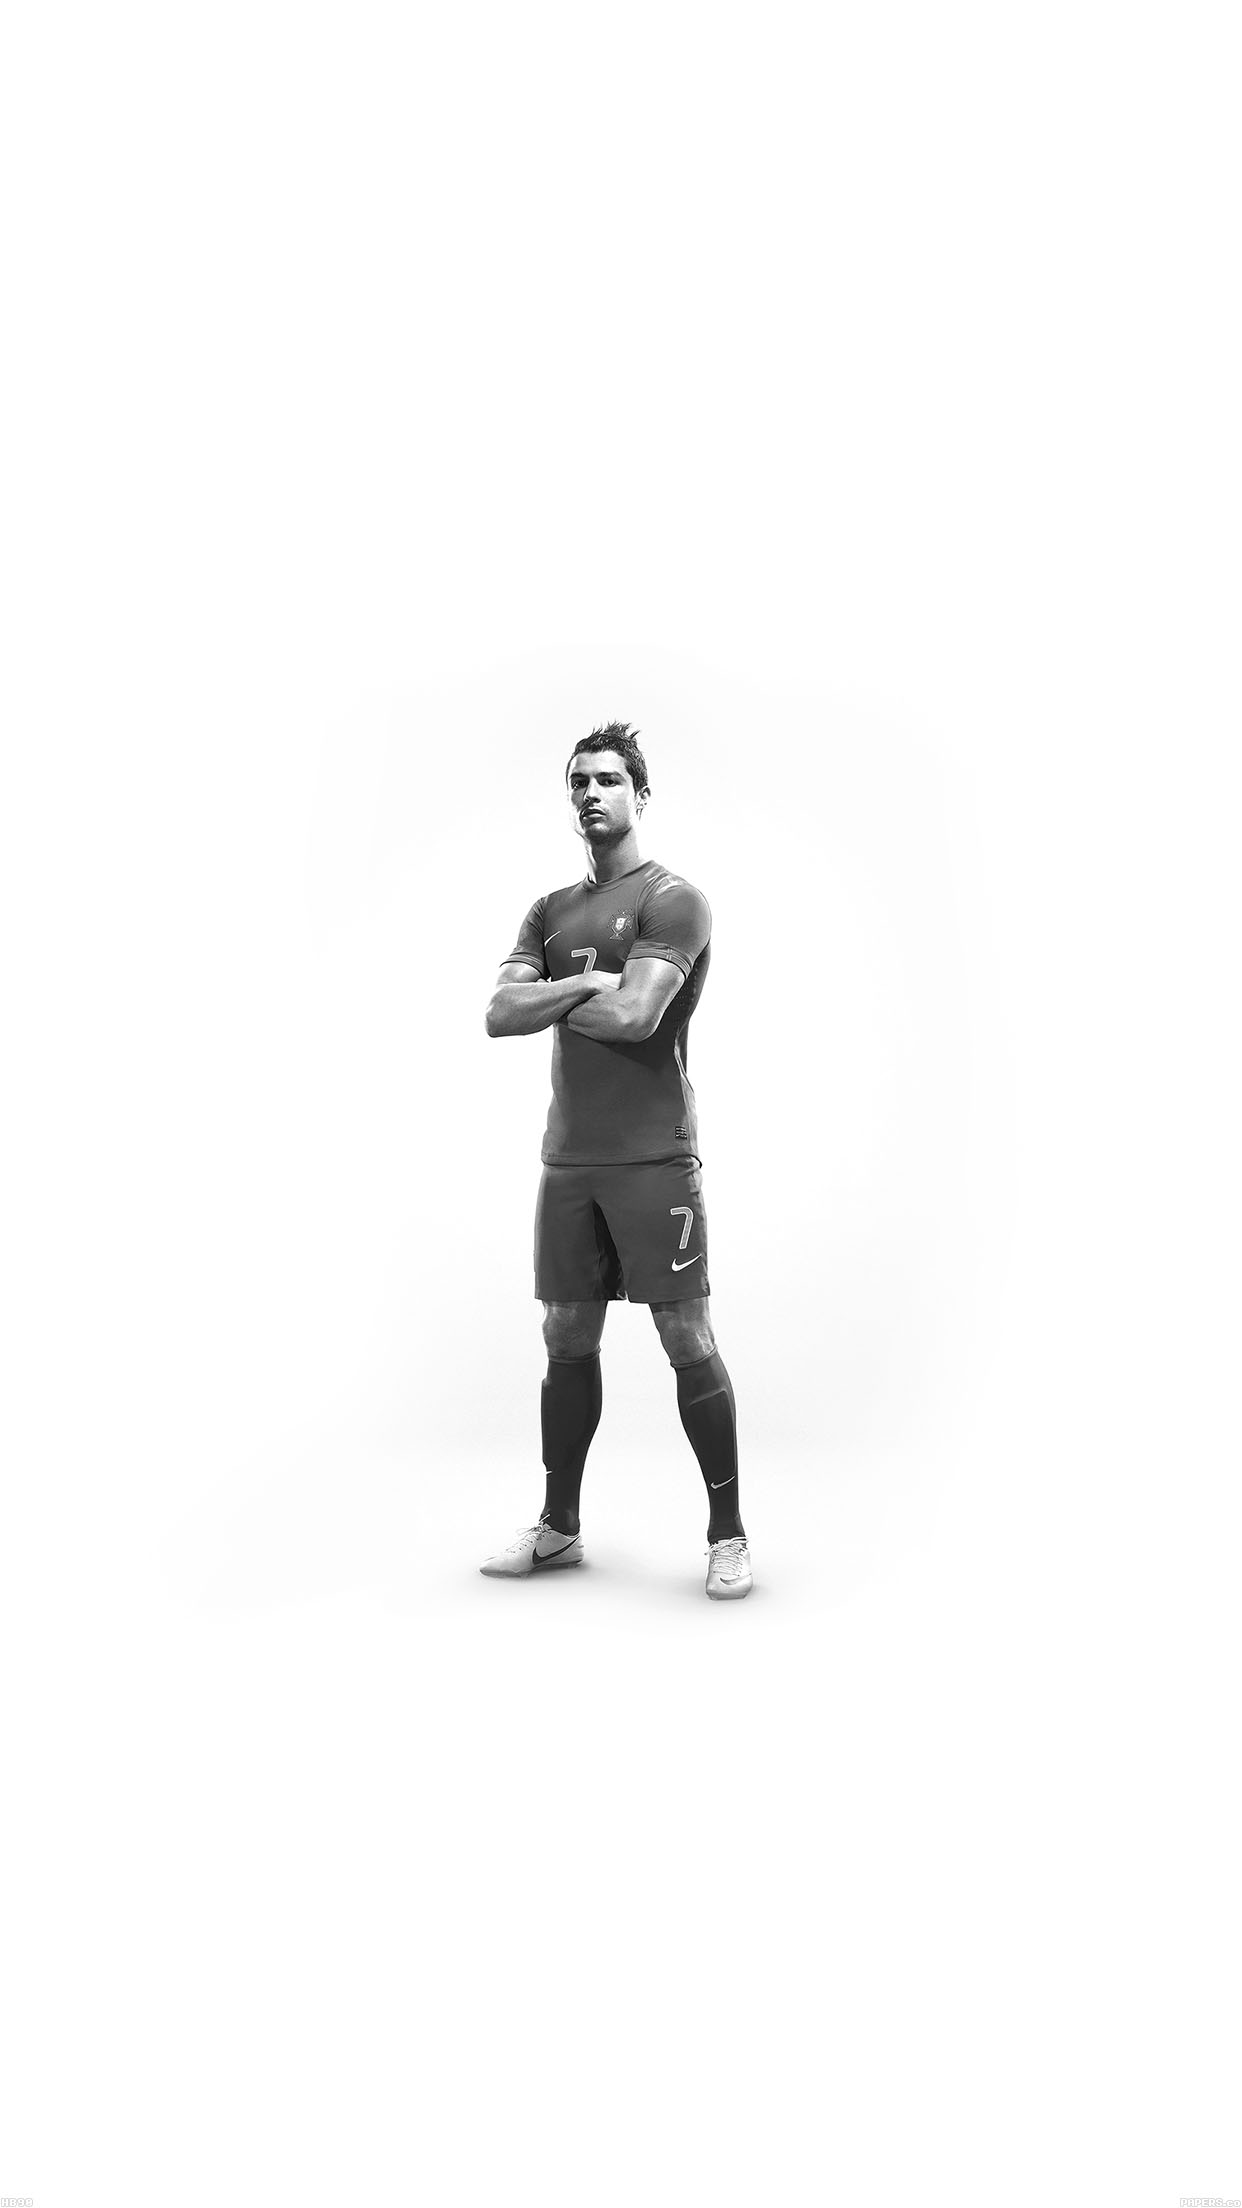 Christiano Ronaldo 7 Proud White Android wallpaper